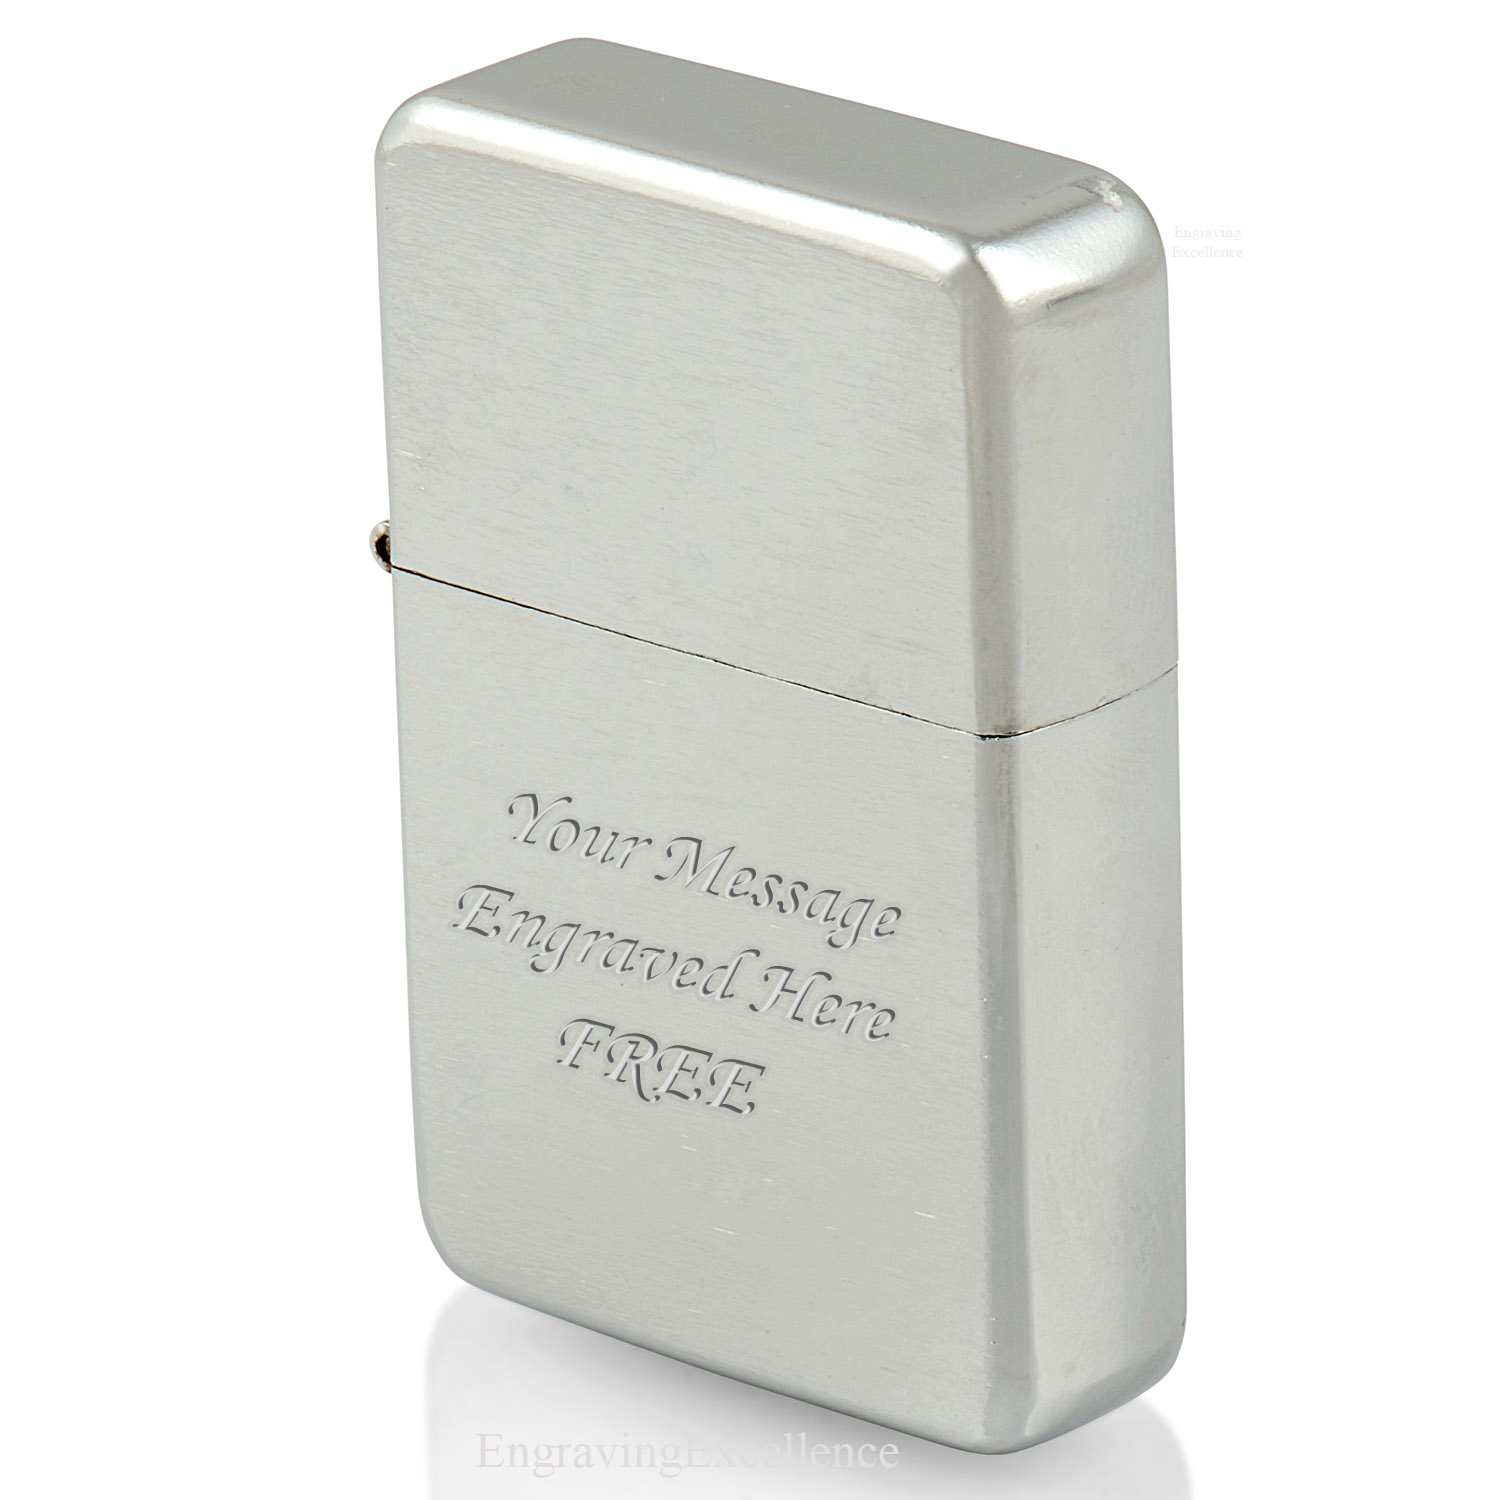 Brushed Effect, Silver Tone Lighter